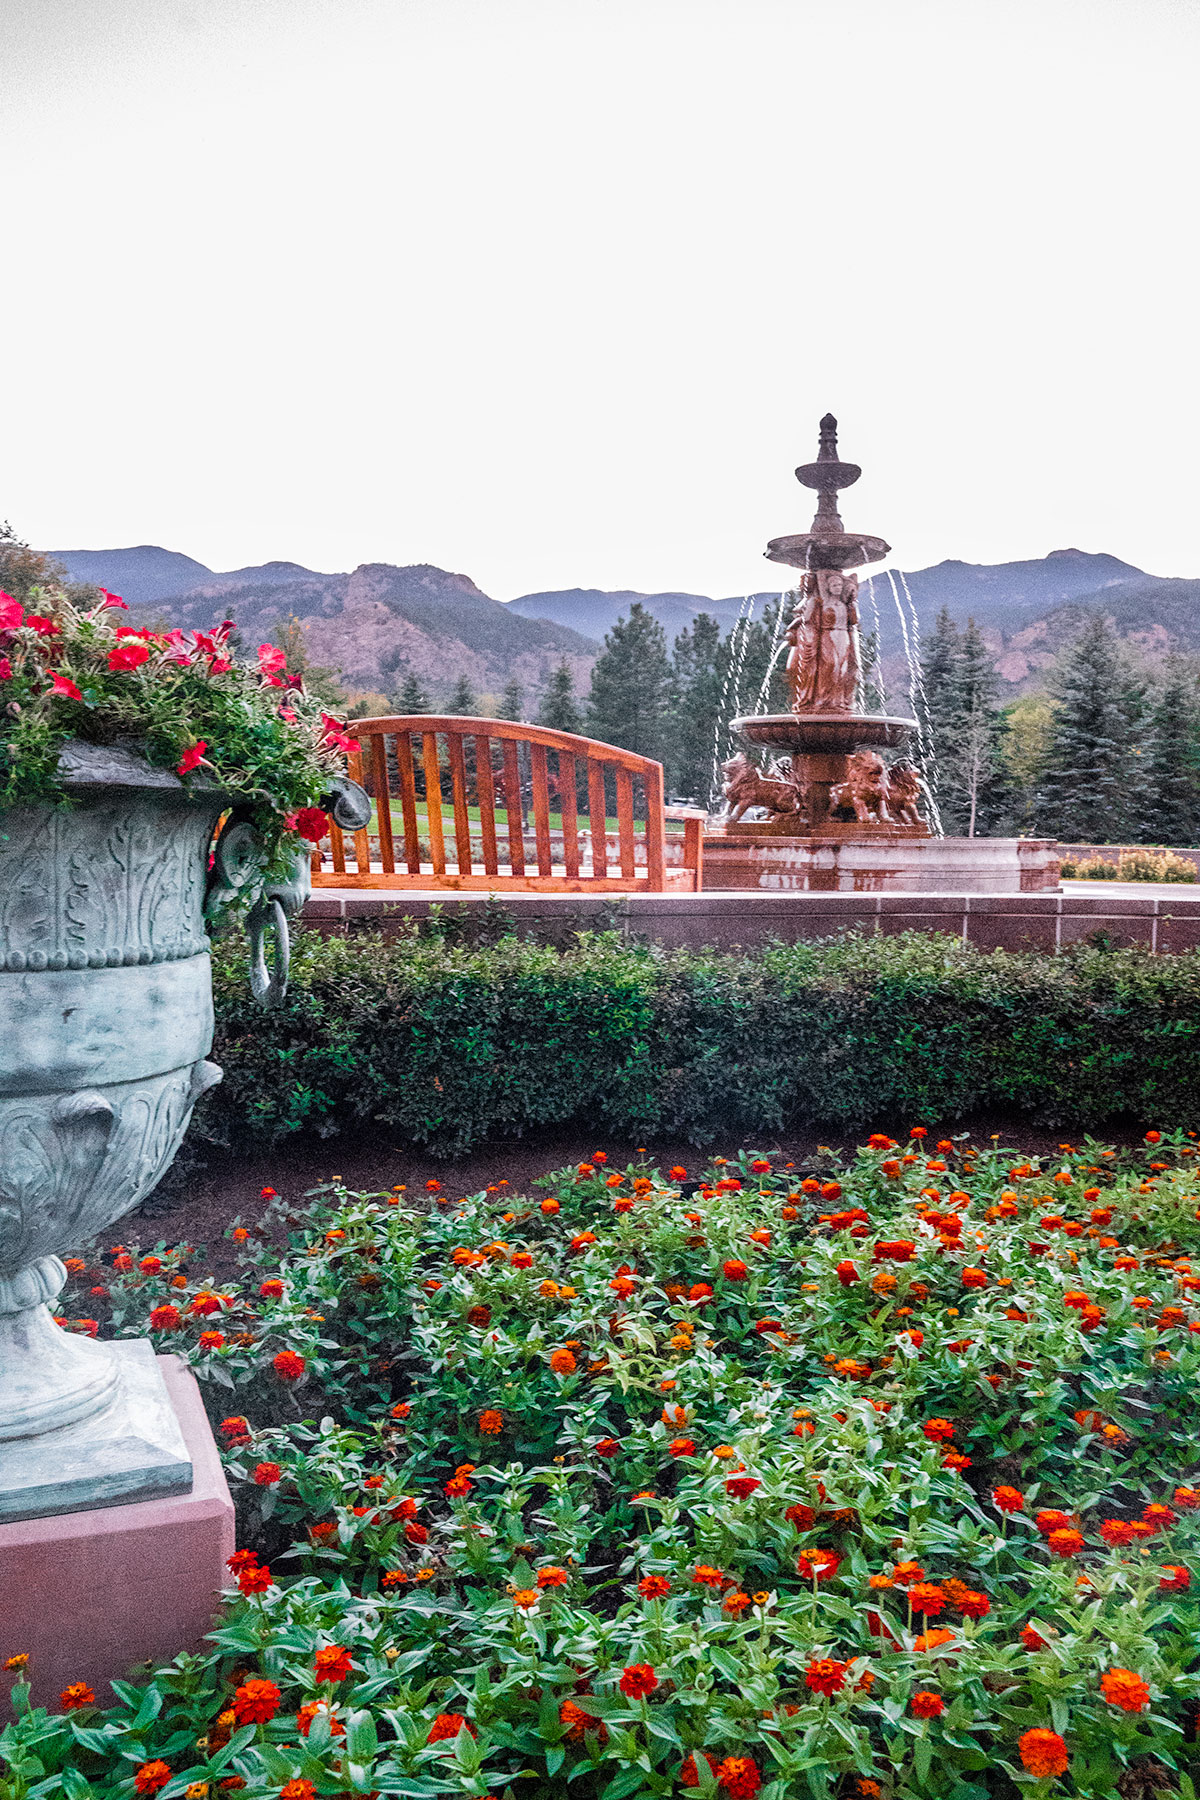 Fountains-and-Gardens-Broadmoor-Colorado-Springs